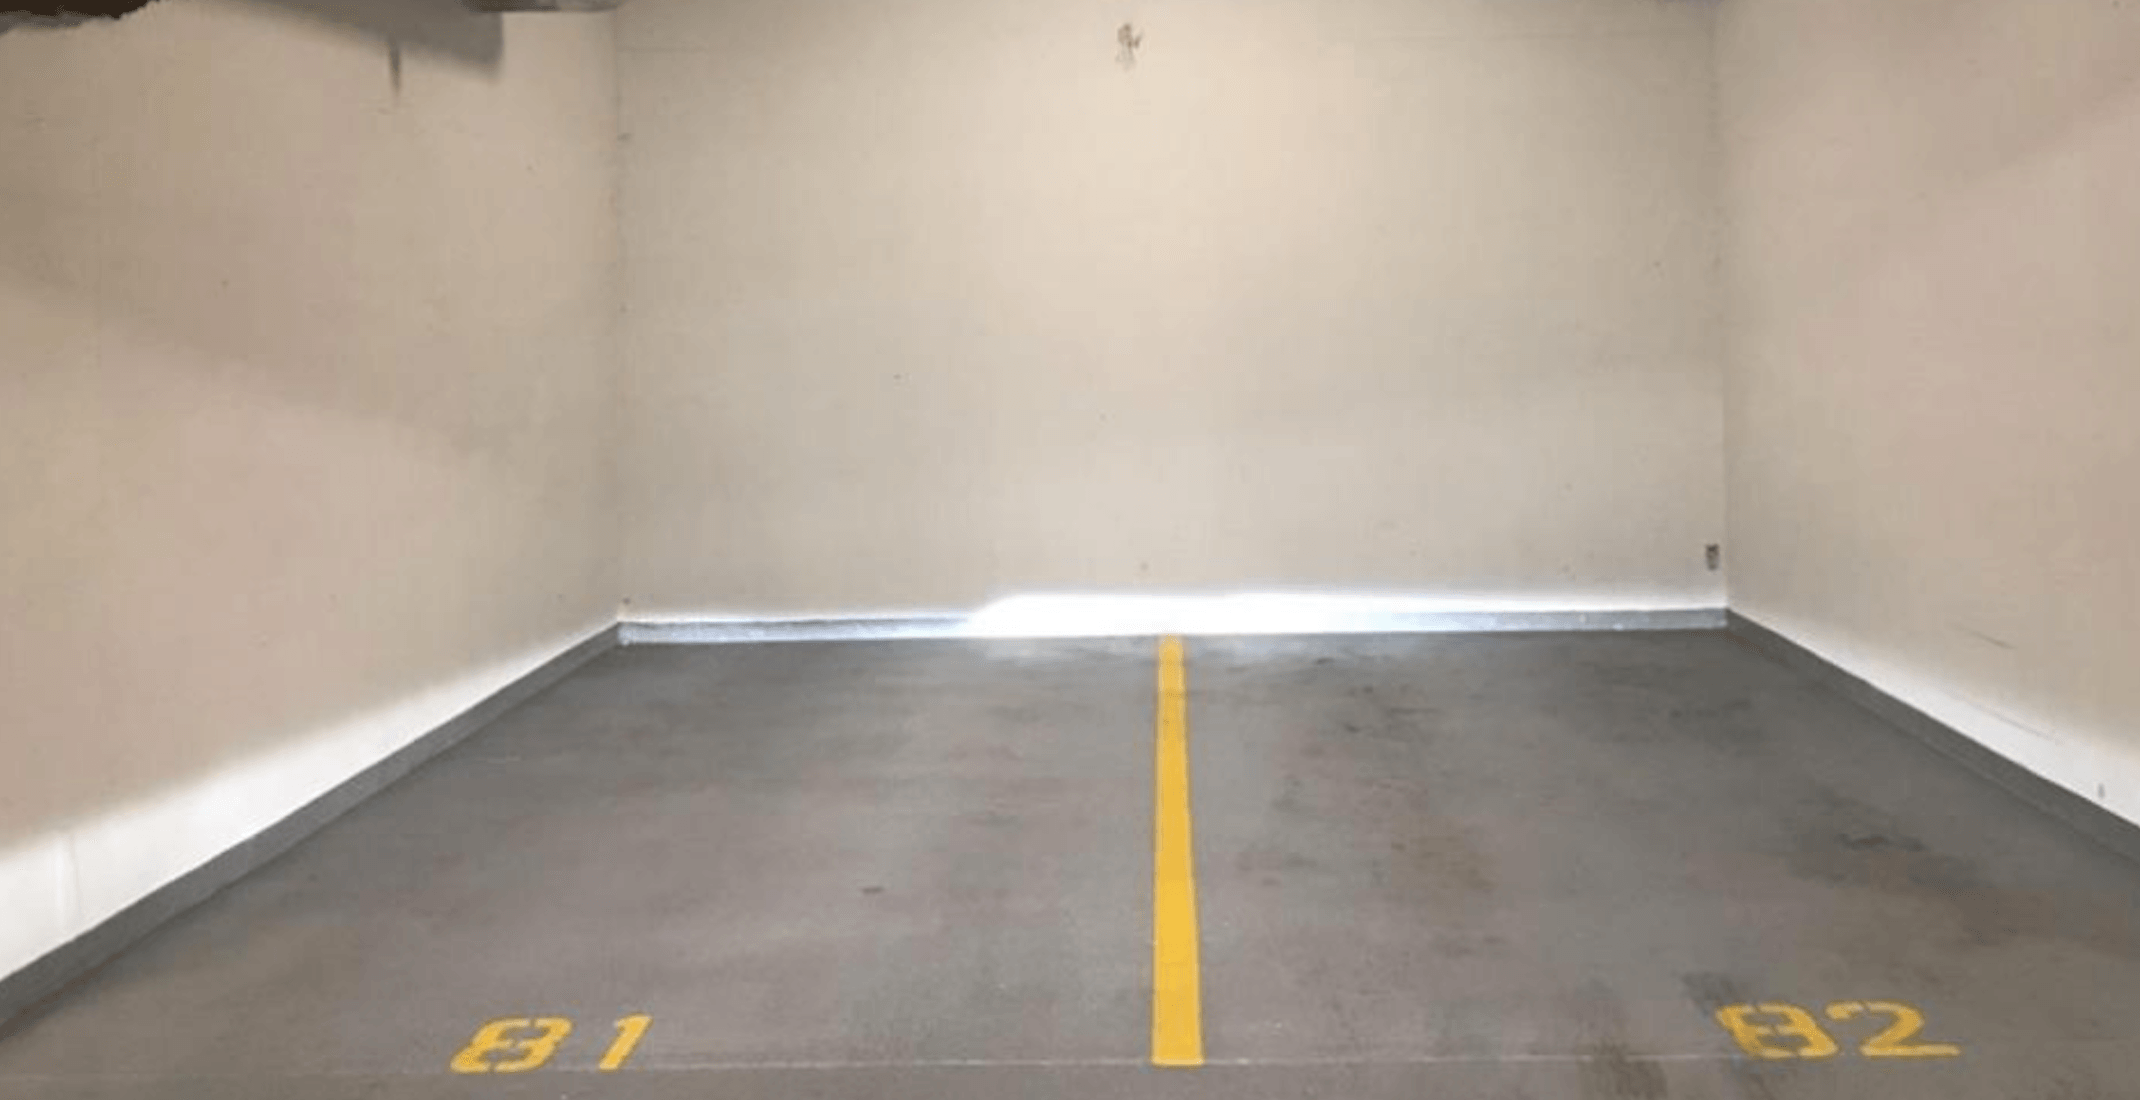 Vancouver parking stall currently listed for $50K on real estate website